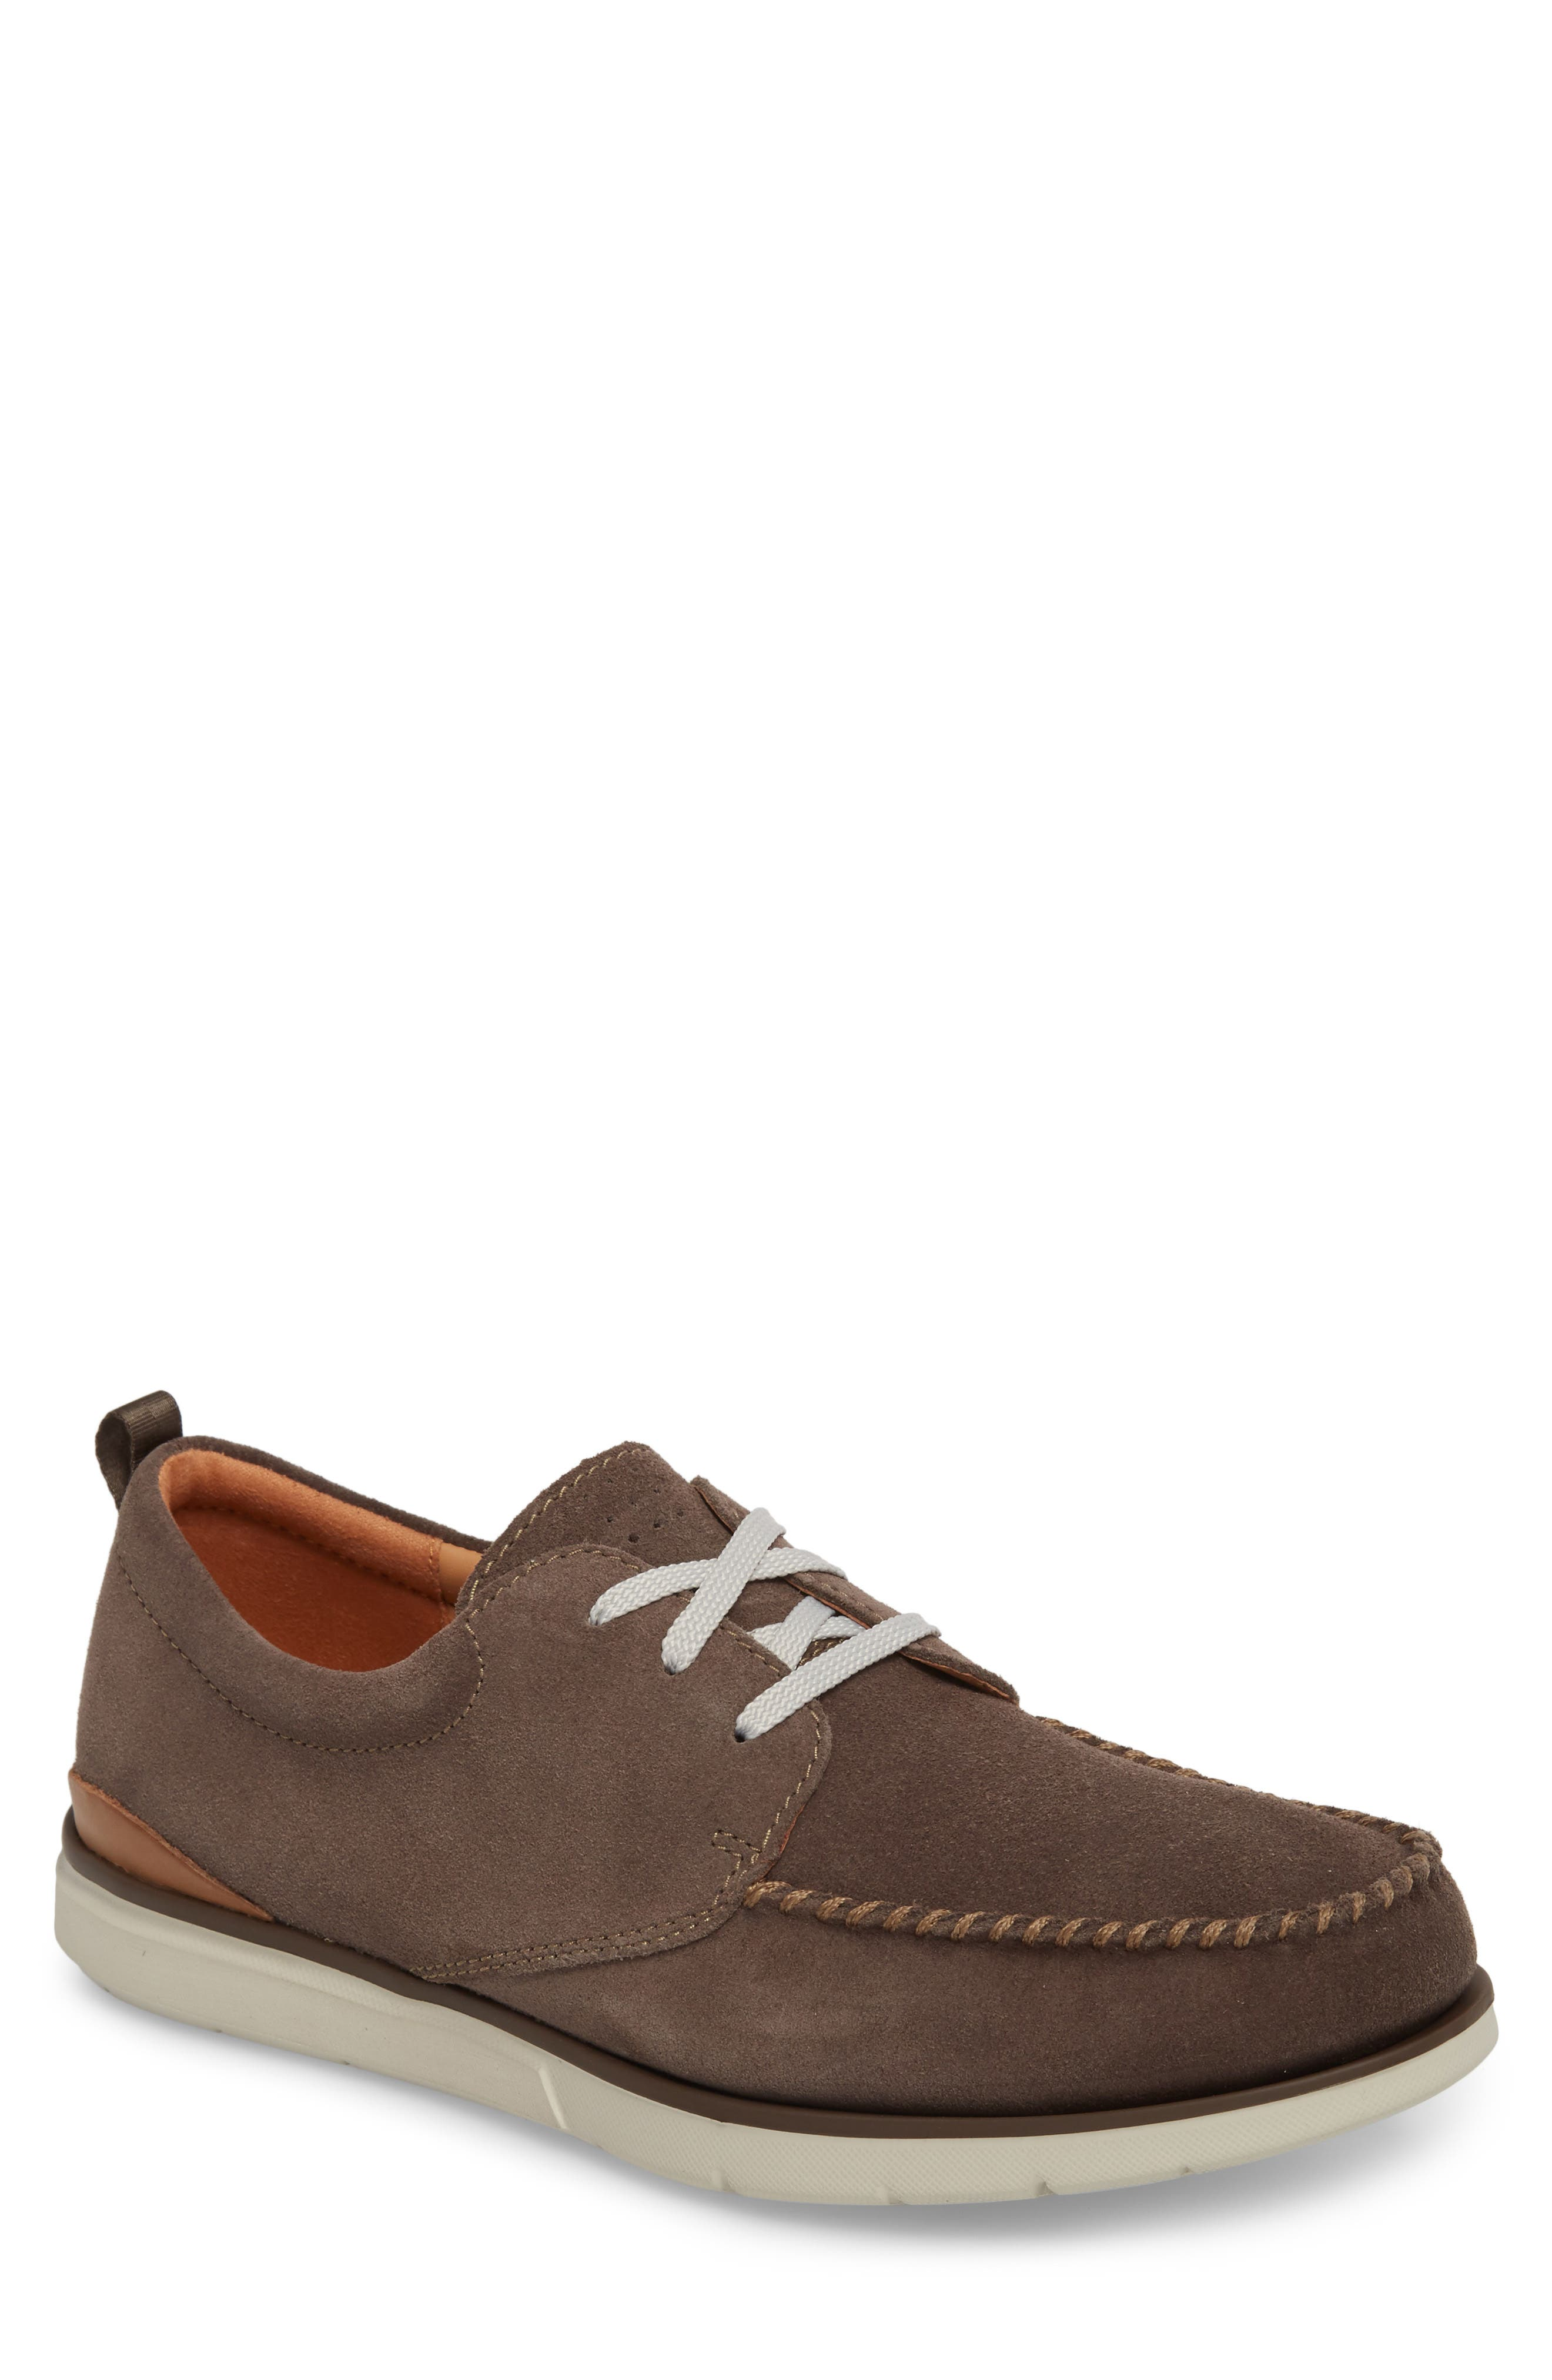 Edgewood Mix Moc Toe Derby,                         Main,                         color, Taupe Suede